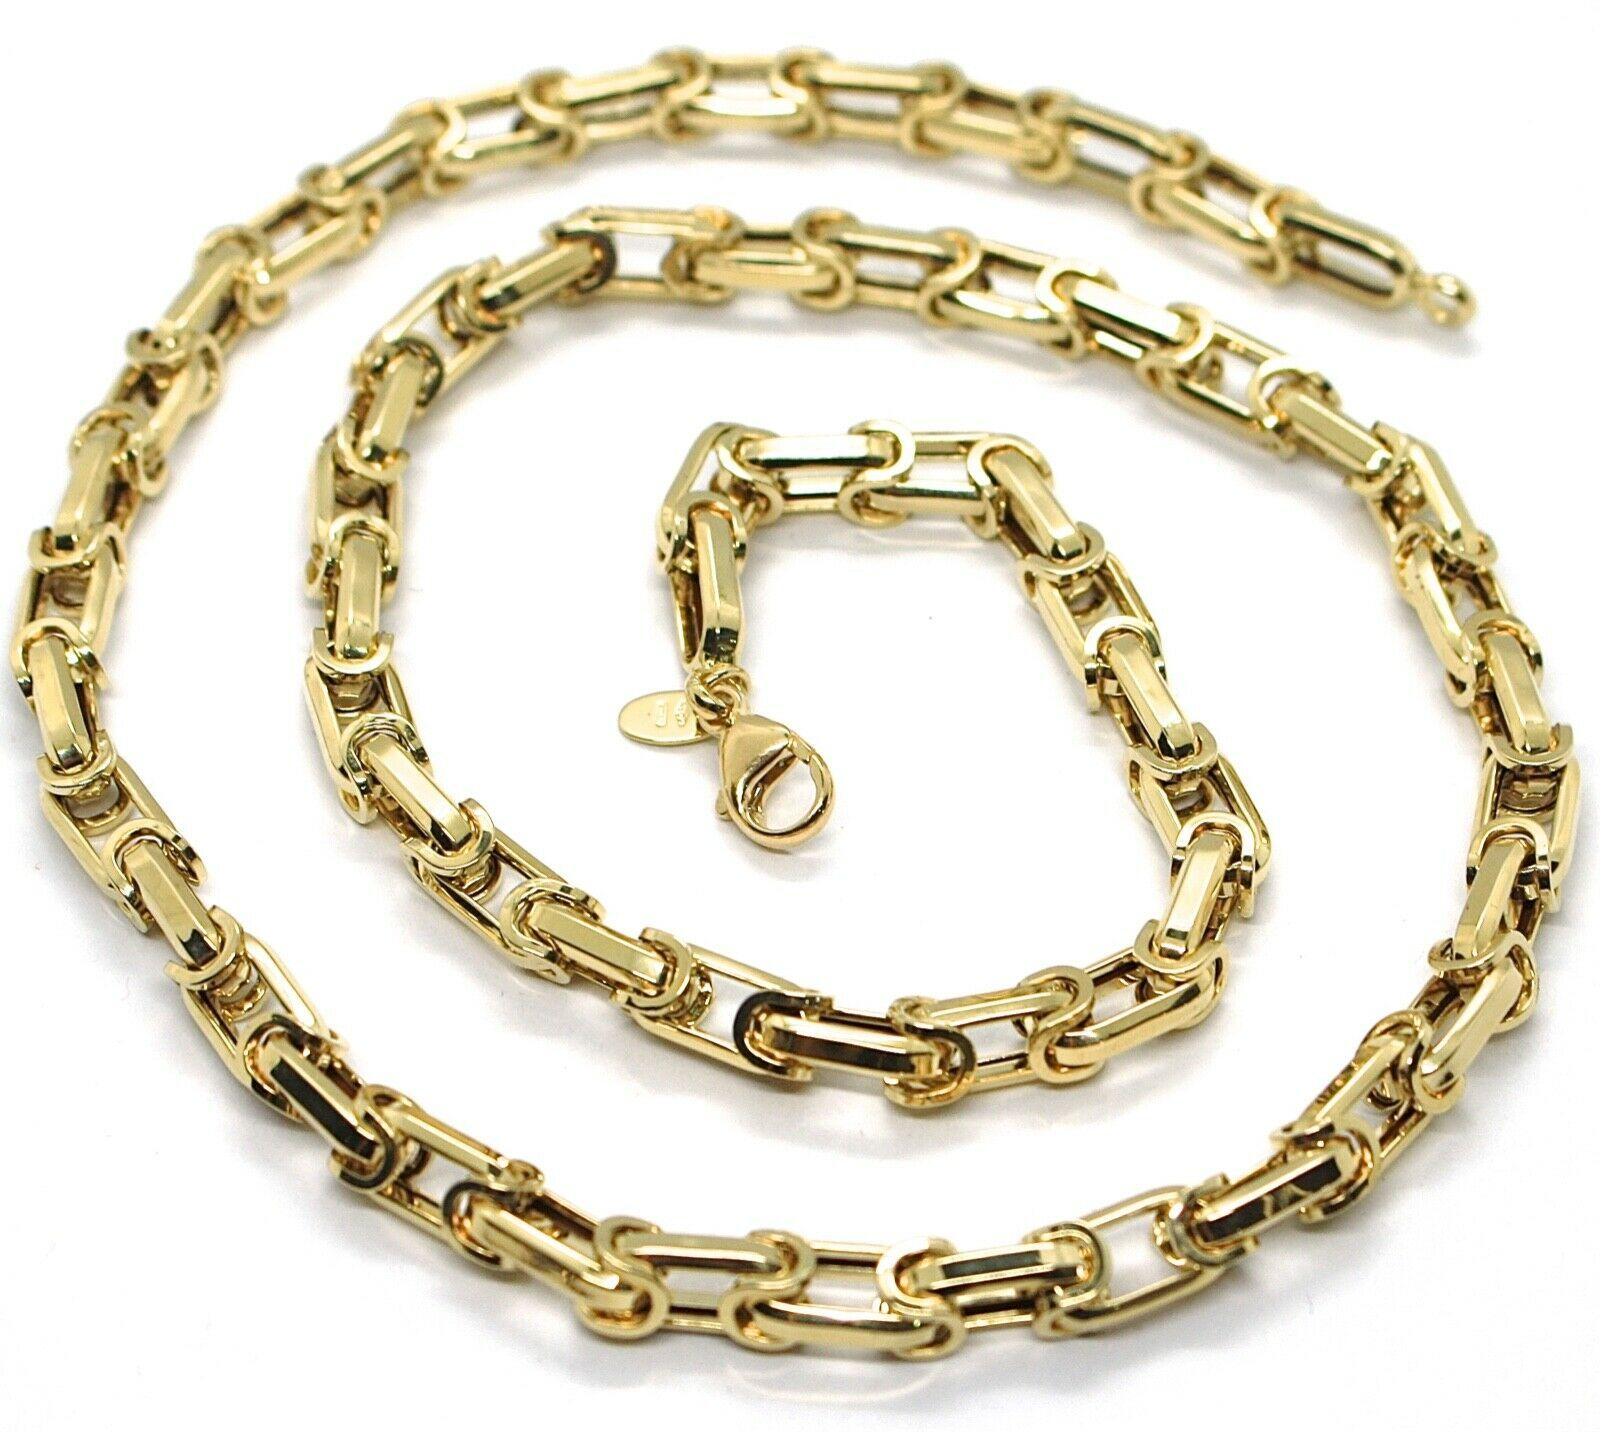 18K YELLOW GOLD CHAIN BIG ALTERNATE OVALS 7 MM 20 INCHES, SQUARED NECKLACE SHOWY